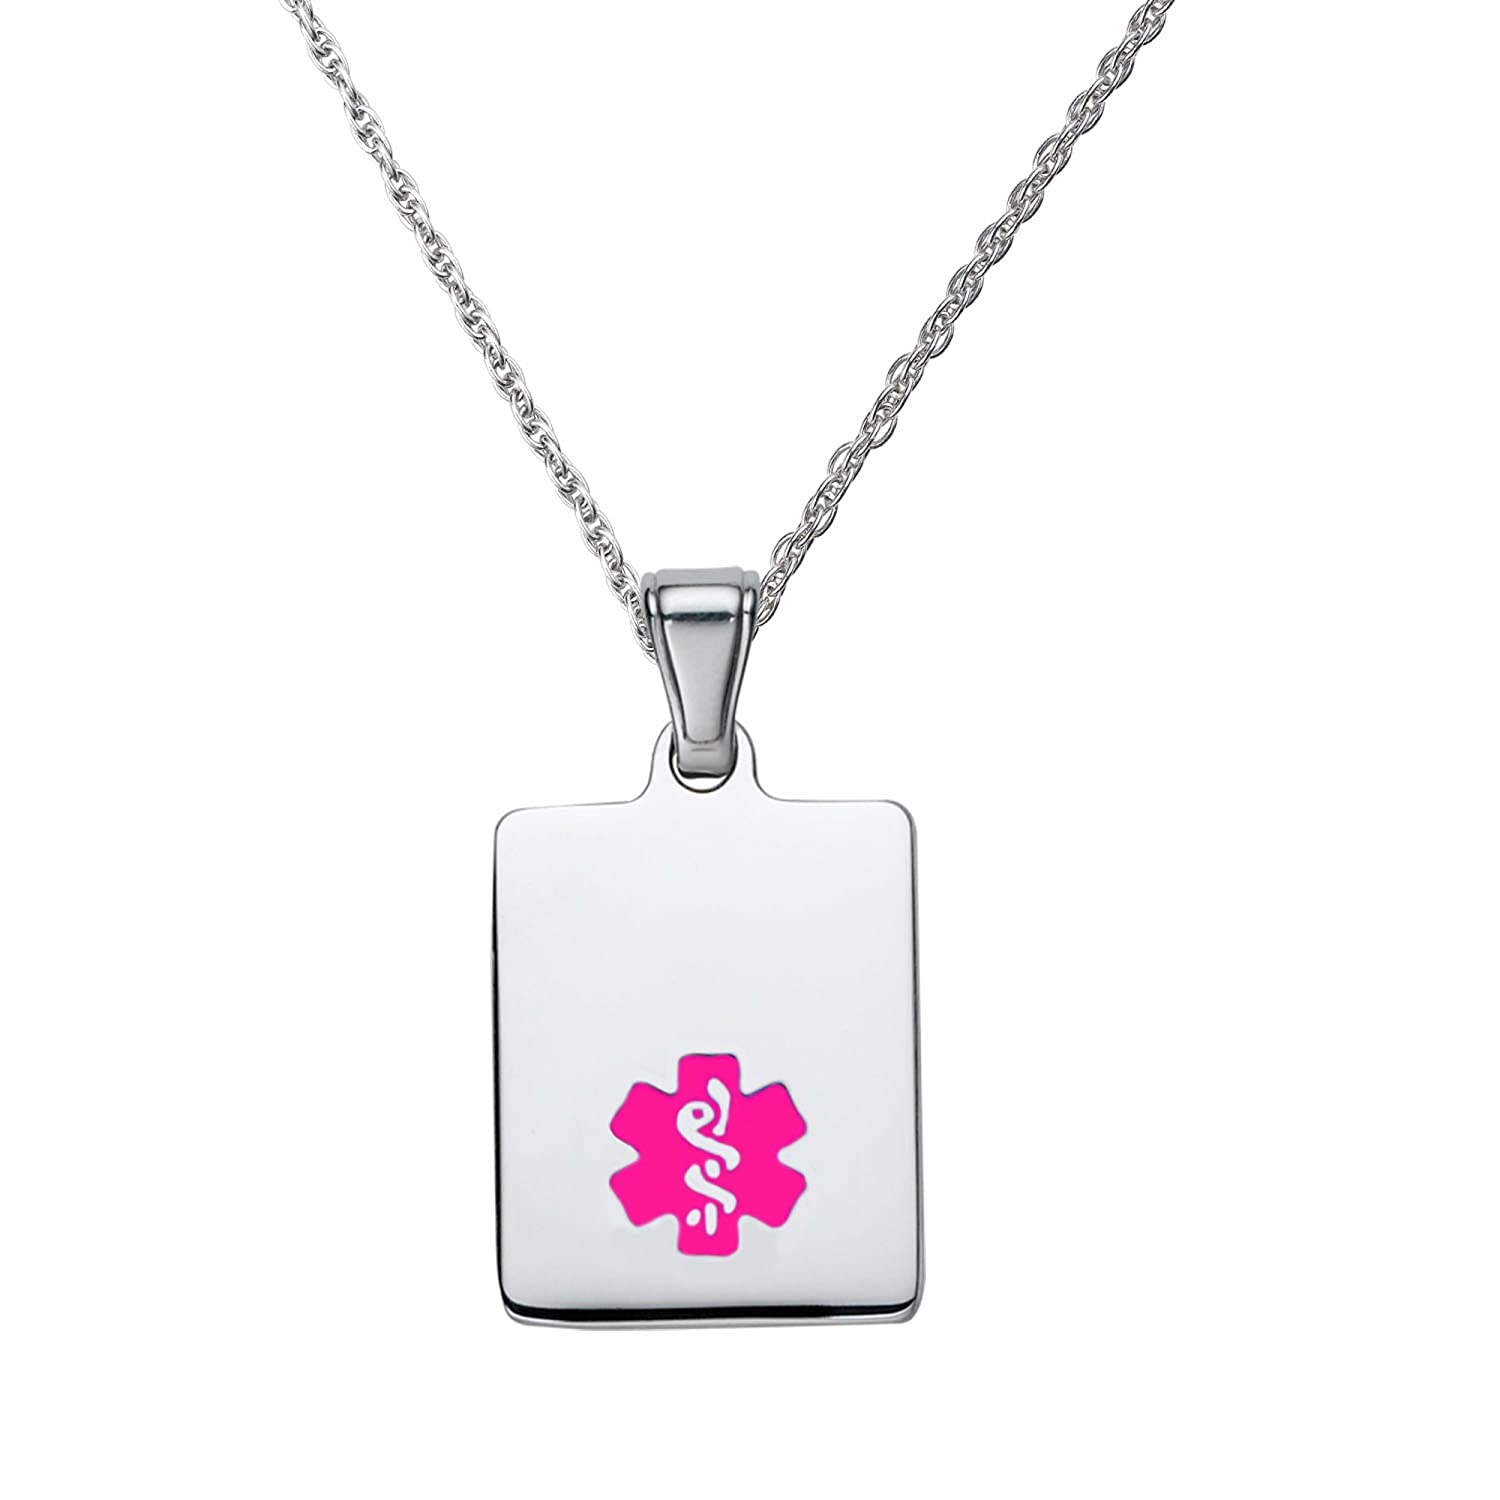 Chain 24//28 in Divoti Free Deep Custom Laser Engraved-316L Sleek Tag Medical Alert Necklace Medical Pendant Tag and Medical ID Necklace Women